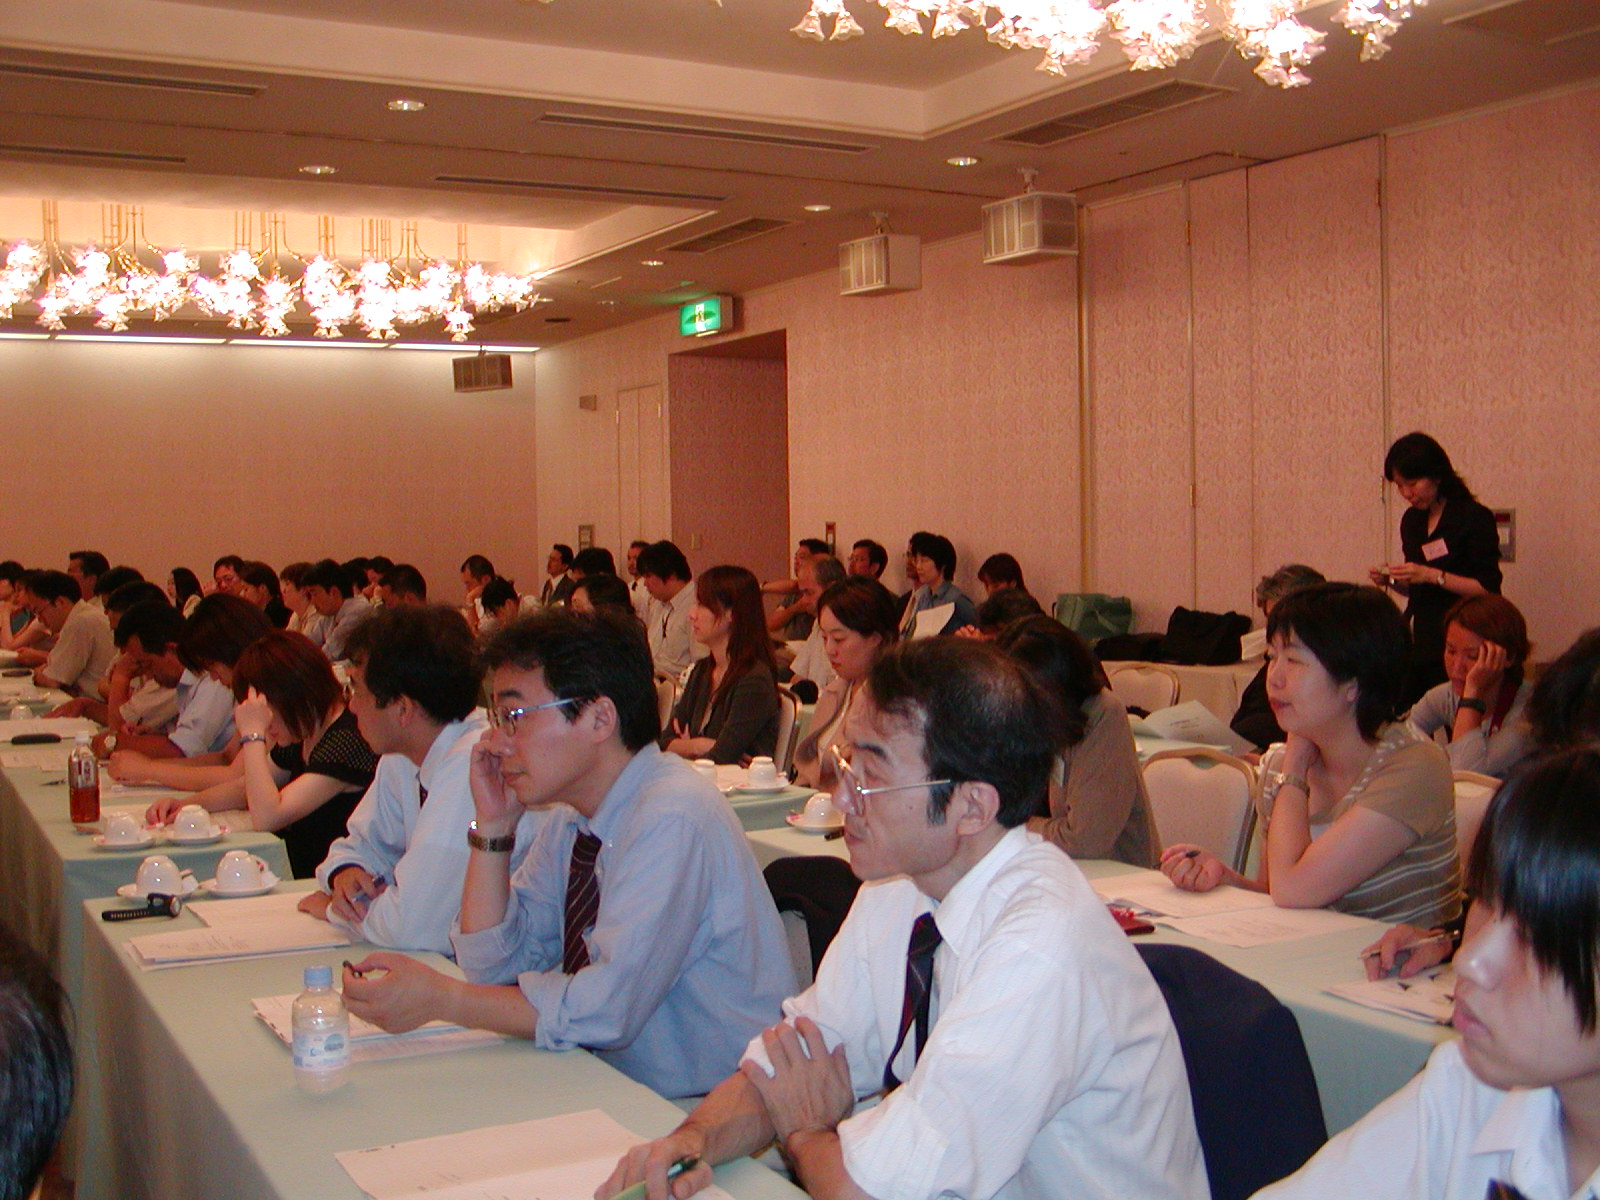 94 people from NGO and trade unions participated in the symposium. (July 26, Ikenohata Bunka Center)